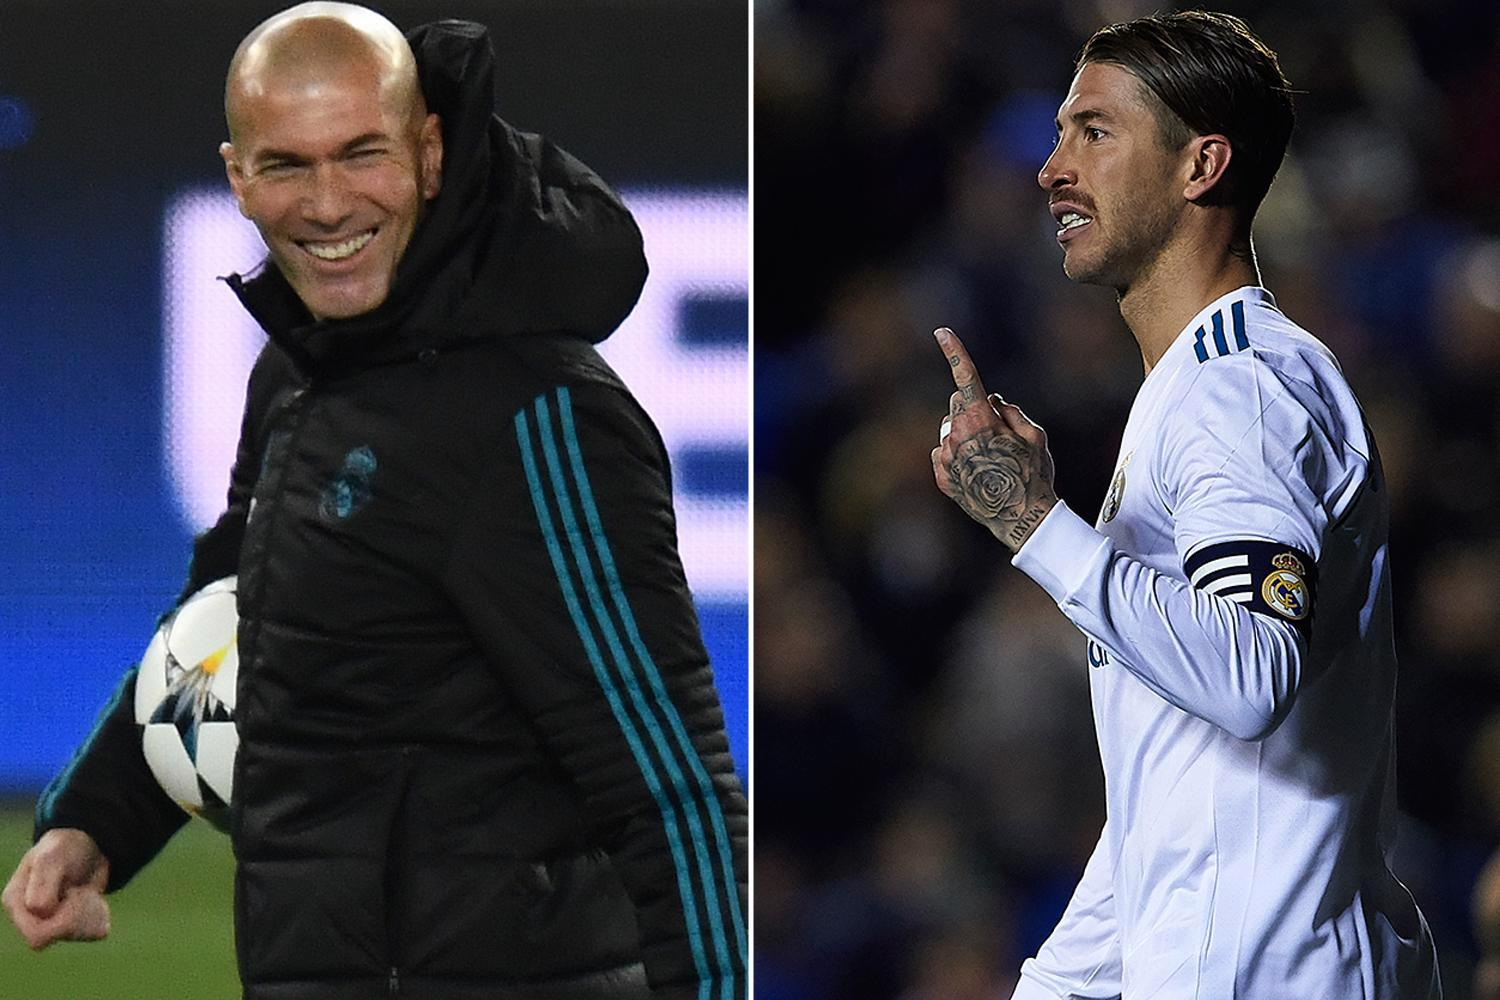 Real Madrid ace Sergio Ramos left pitch during play against Eibar 'to take a s**t', claims Zinedine Zidane